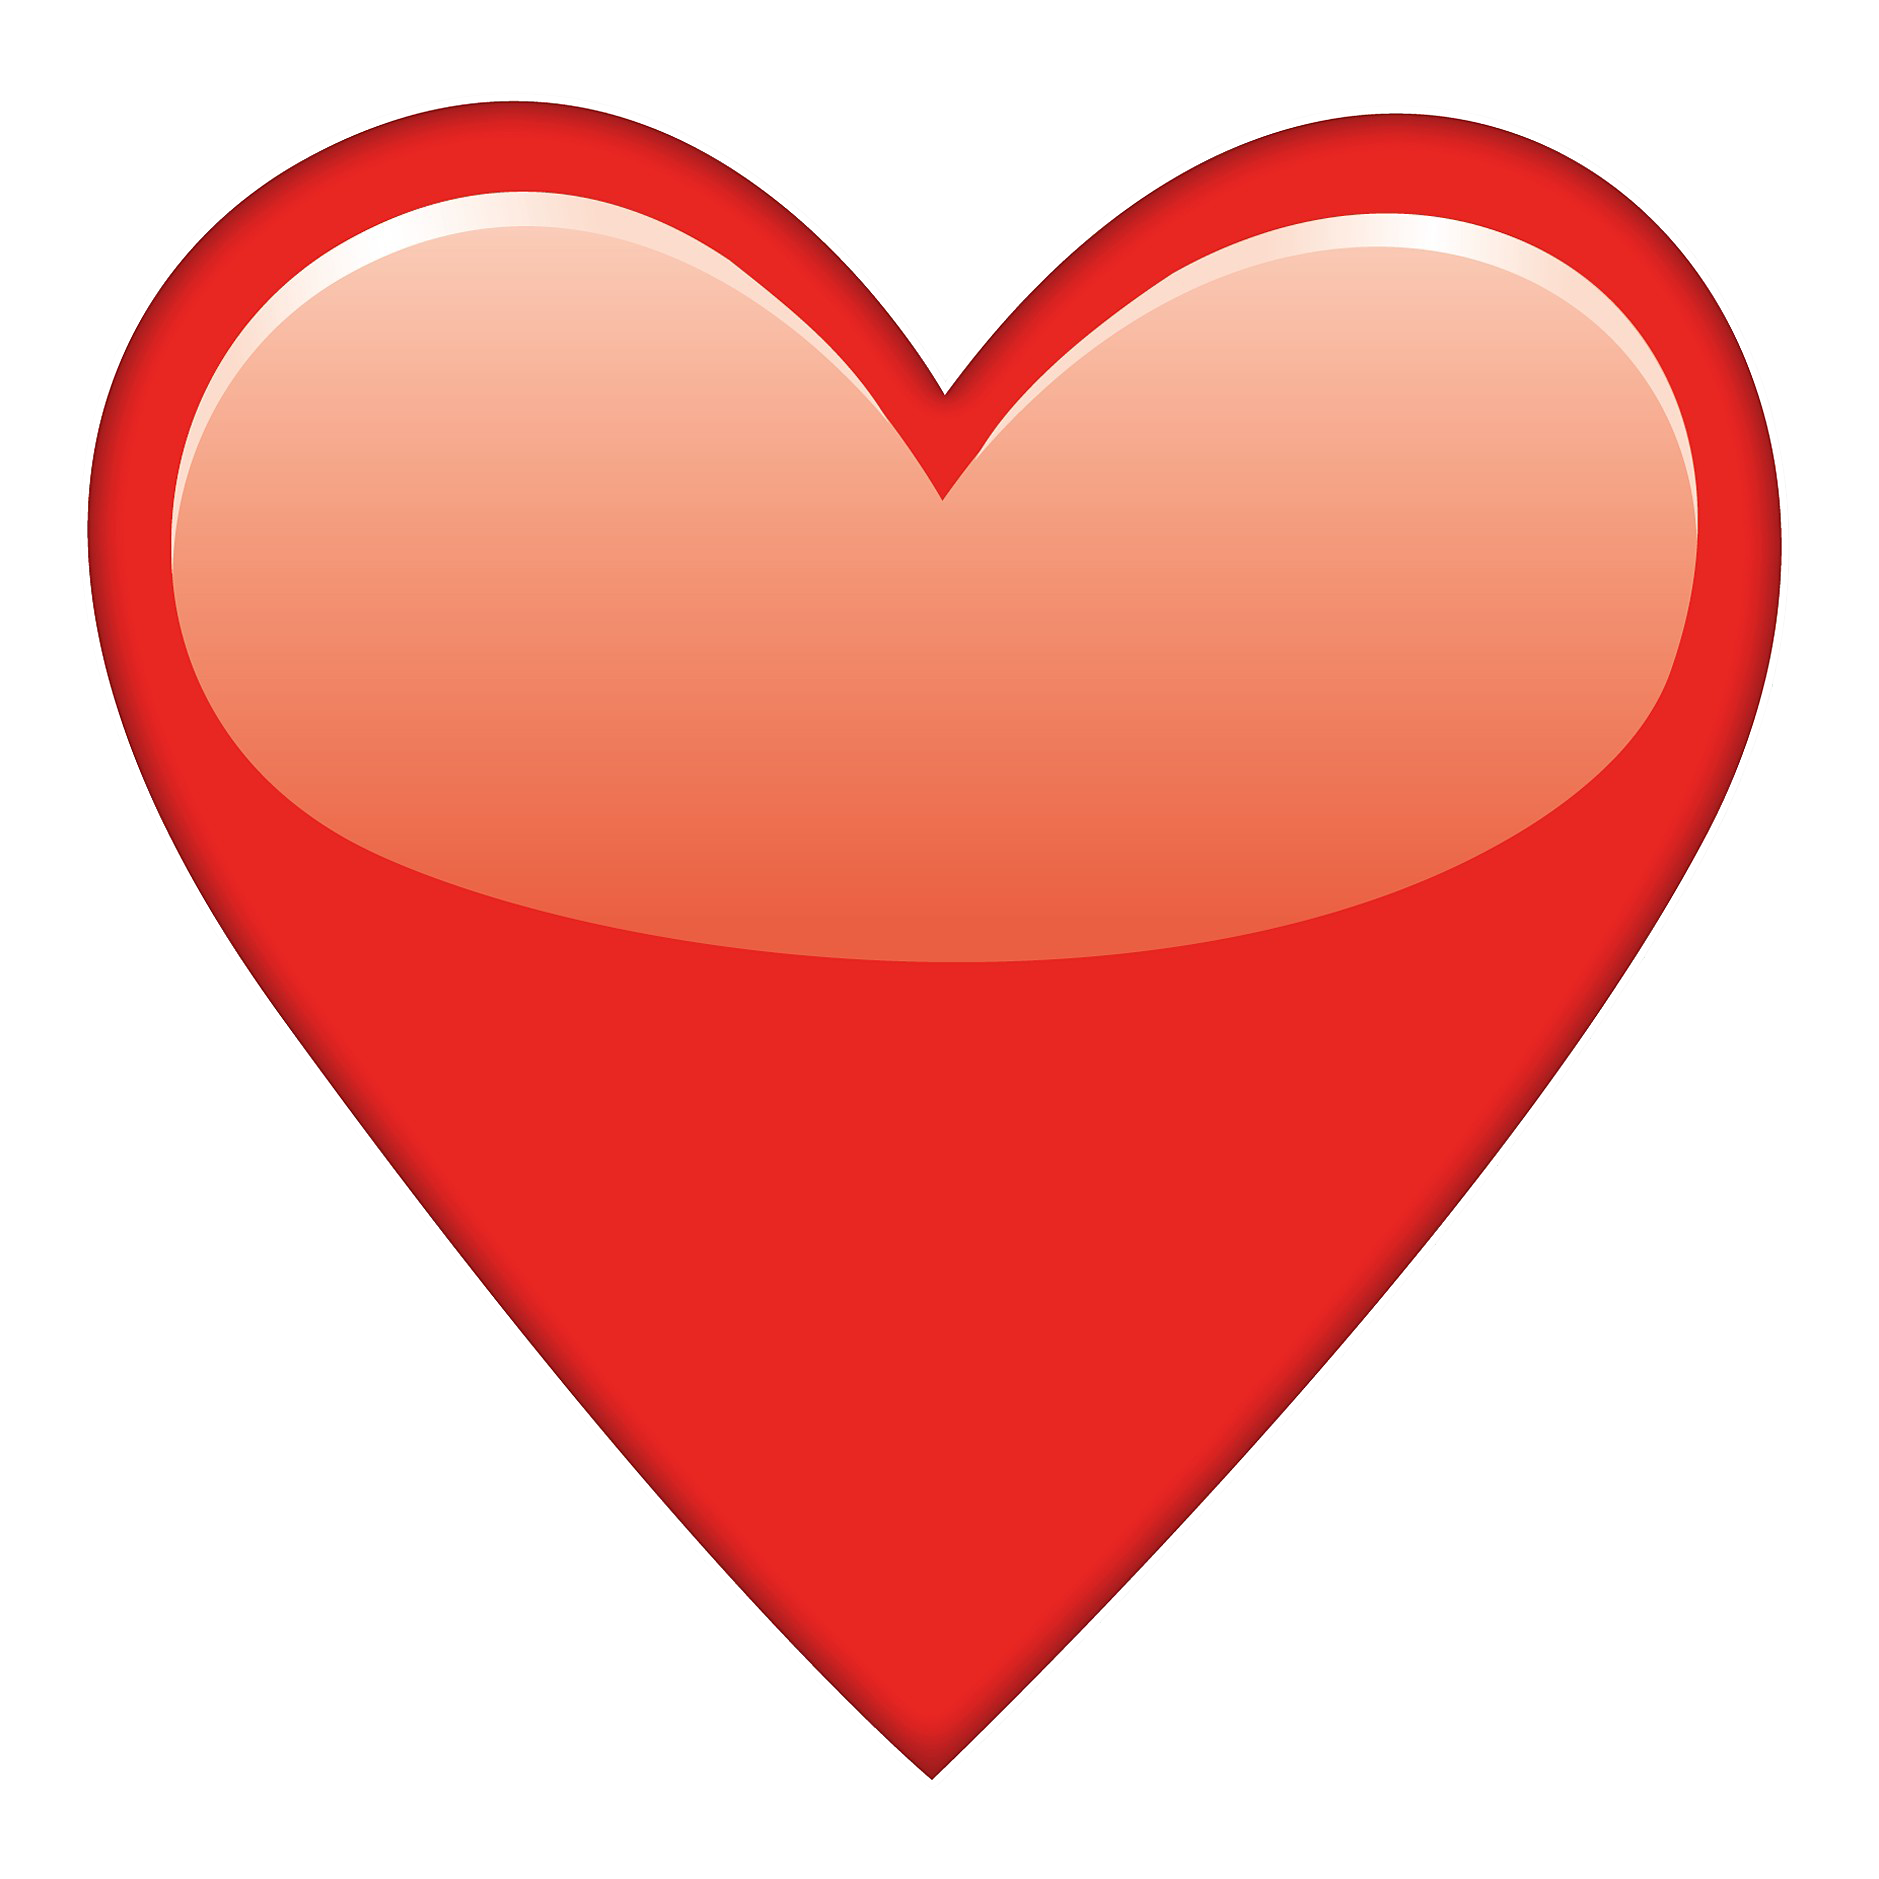 Emoji hearts png. Red heart